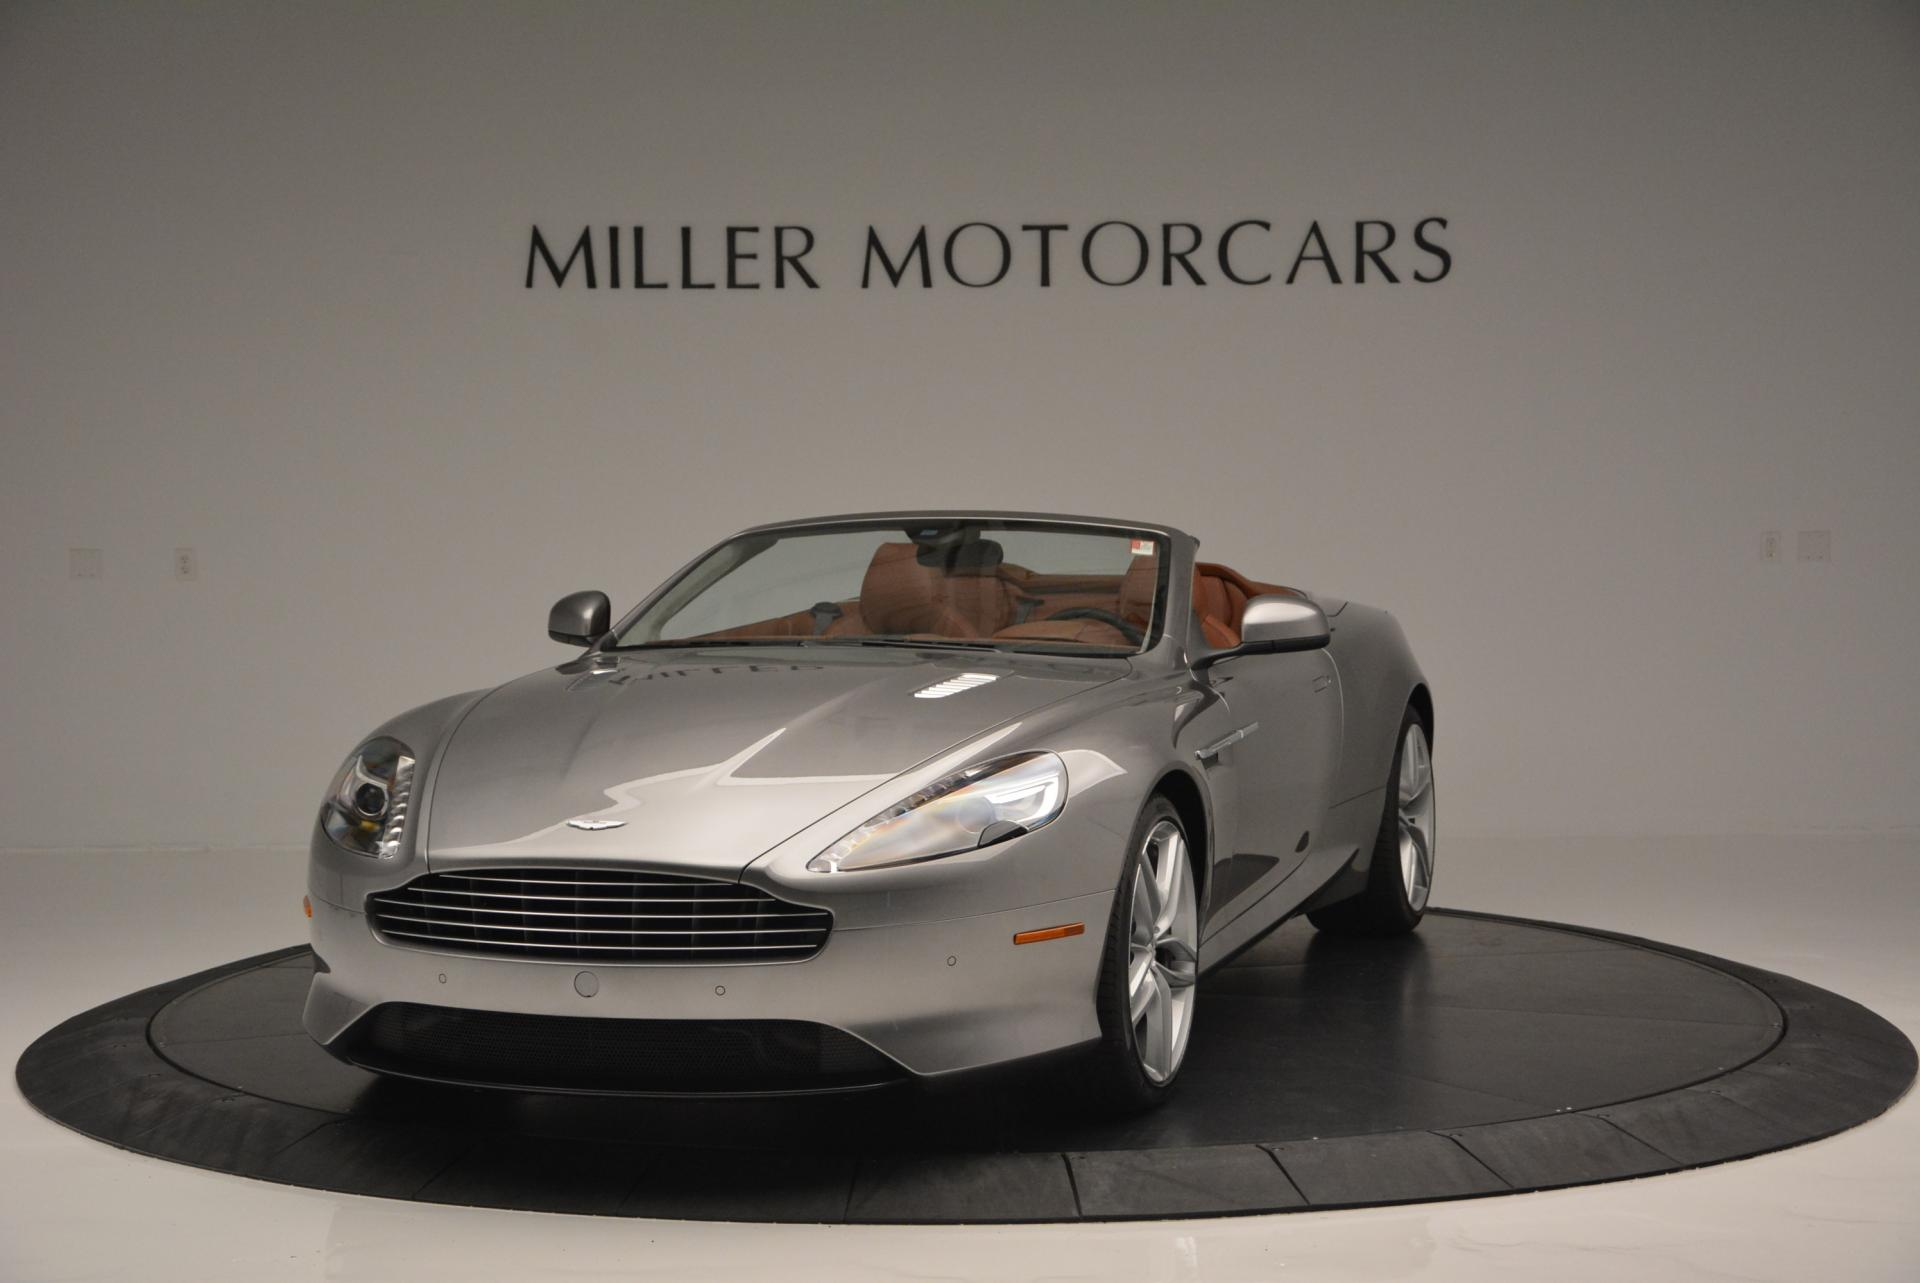 New 2016 Aston Martin DB9 GT Volante for sale Sold at Bentley Greenwich in Greenwich CT 06830 1